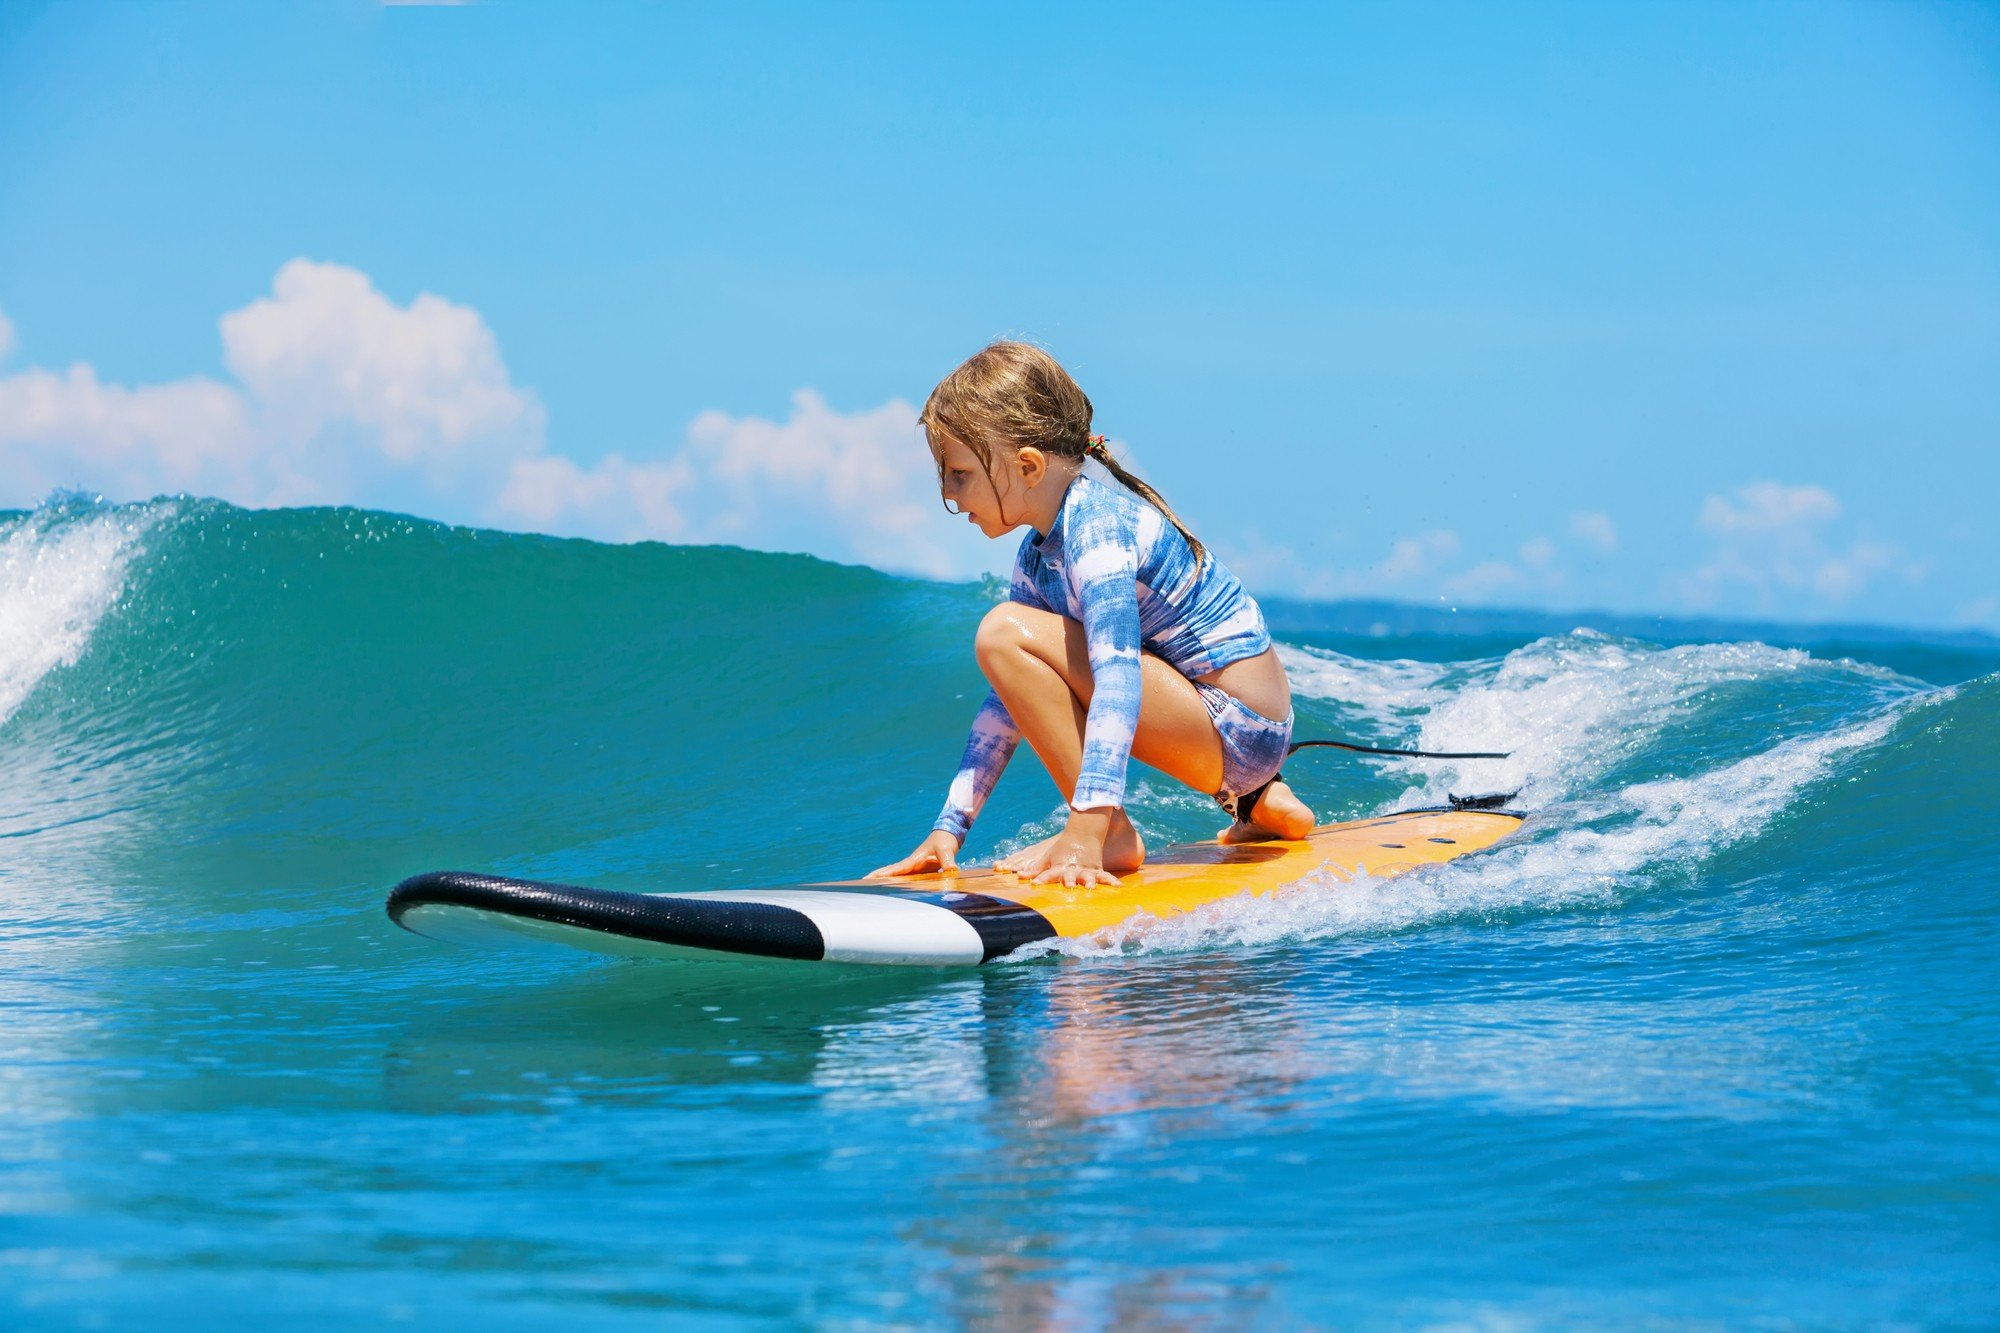 Maui is an ideal place to learn to surf with kids